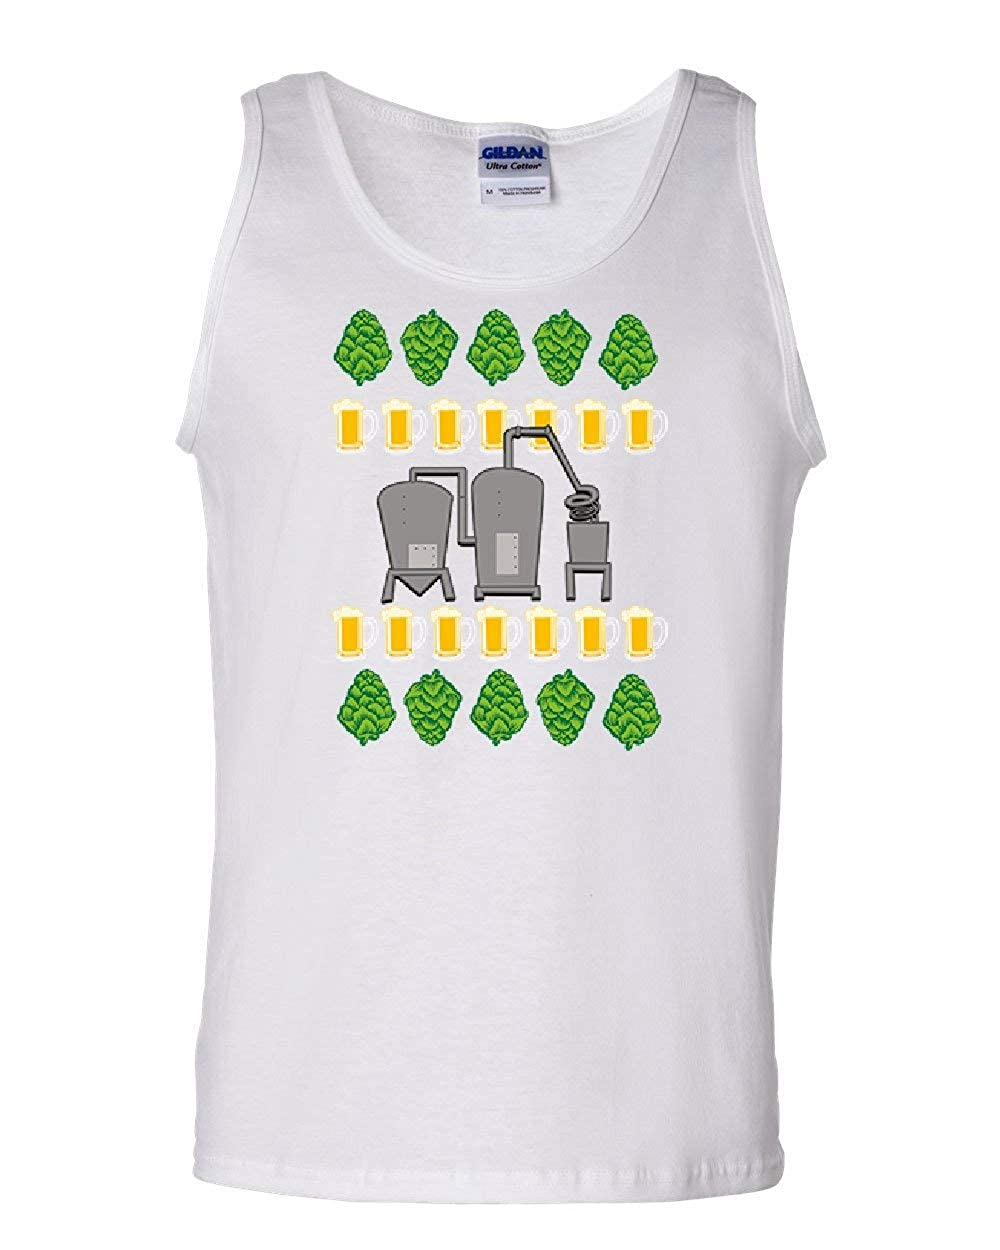 Tee Hunt Hops Brewery Tank Top Beer Ugly Sweater Christmas Xmas Drinking Sleeveless